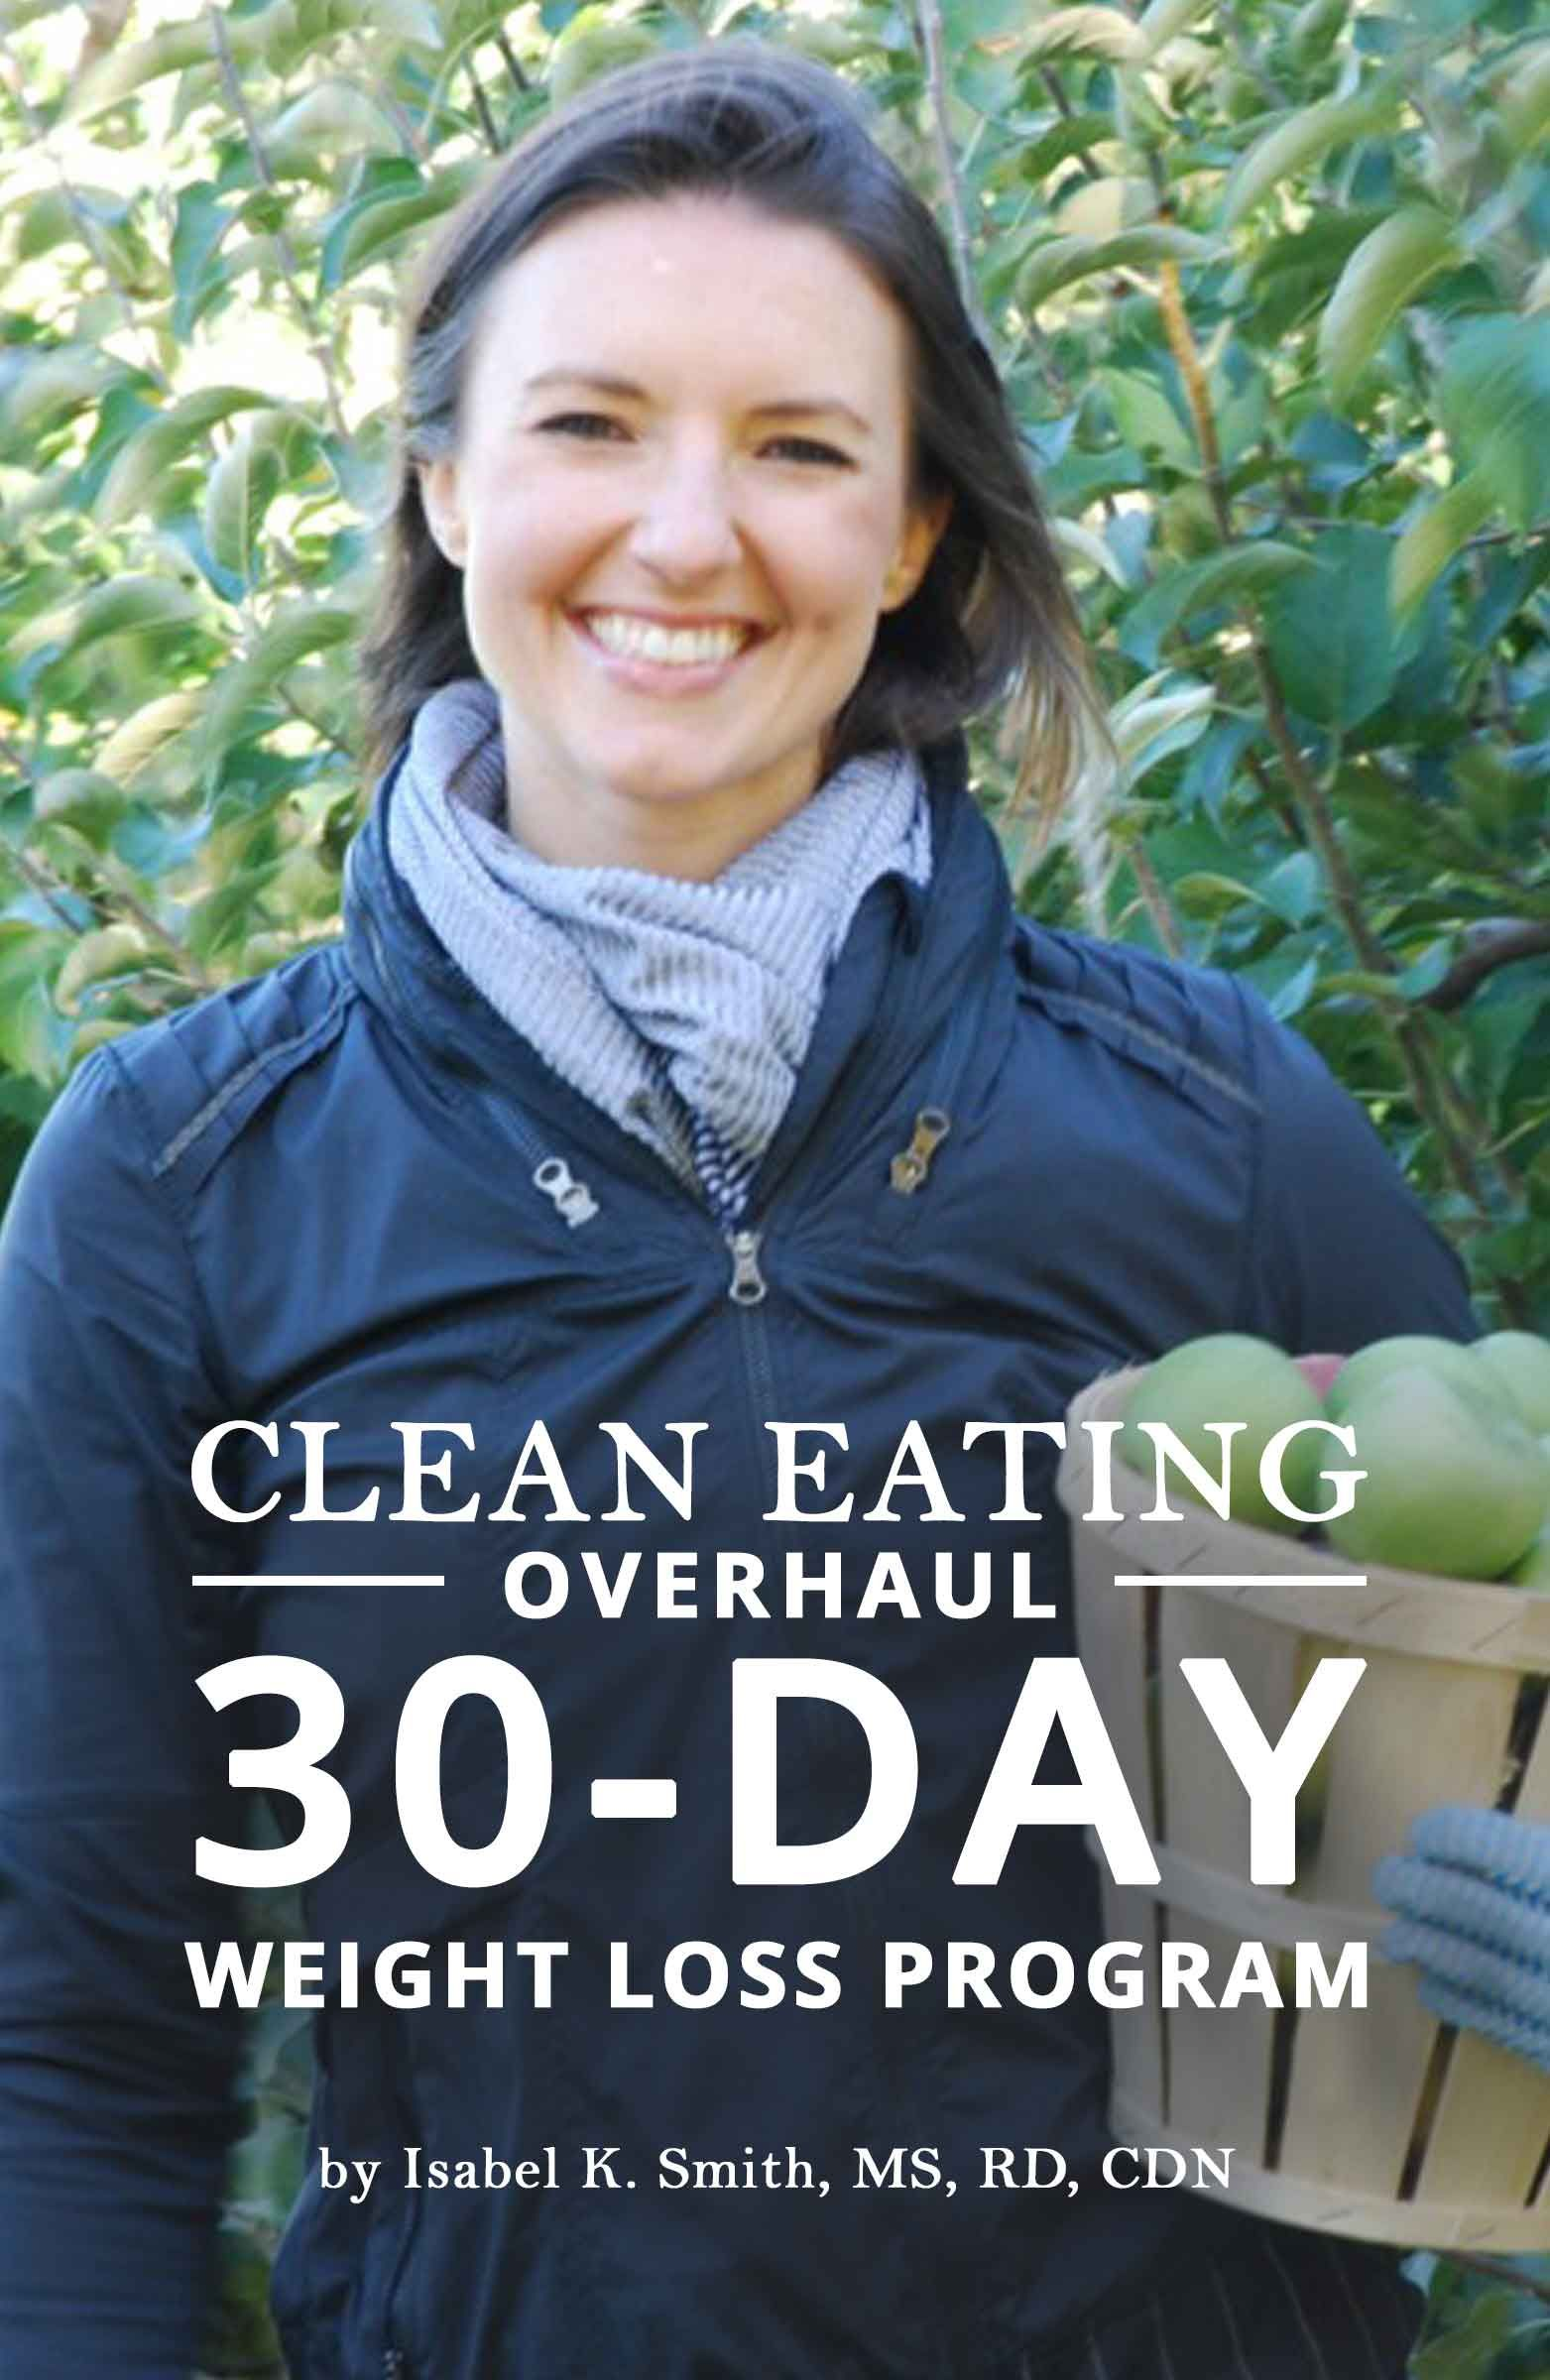 Clean Eating Overhaul: 30-Day Weight Loss Program #cleaneating #weightloss